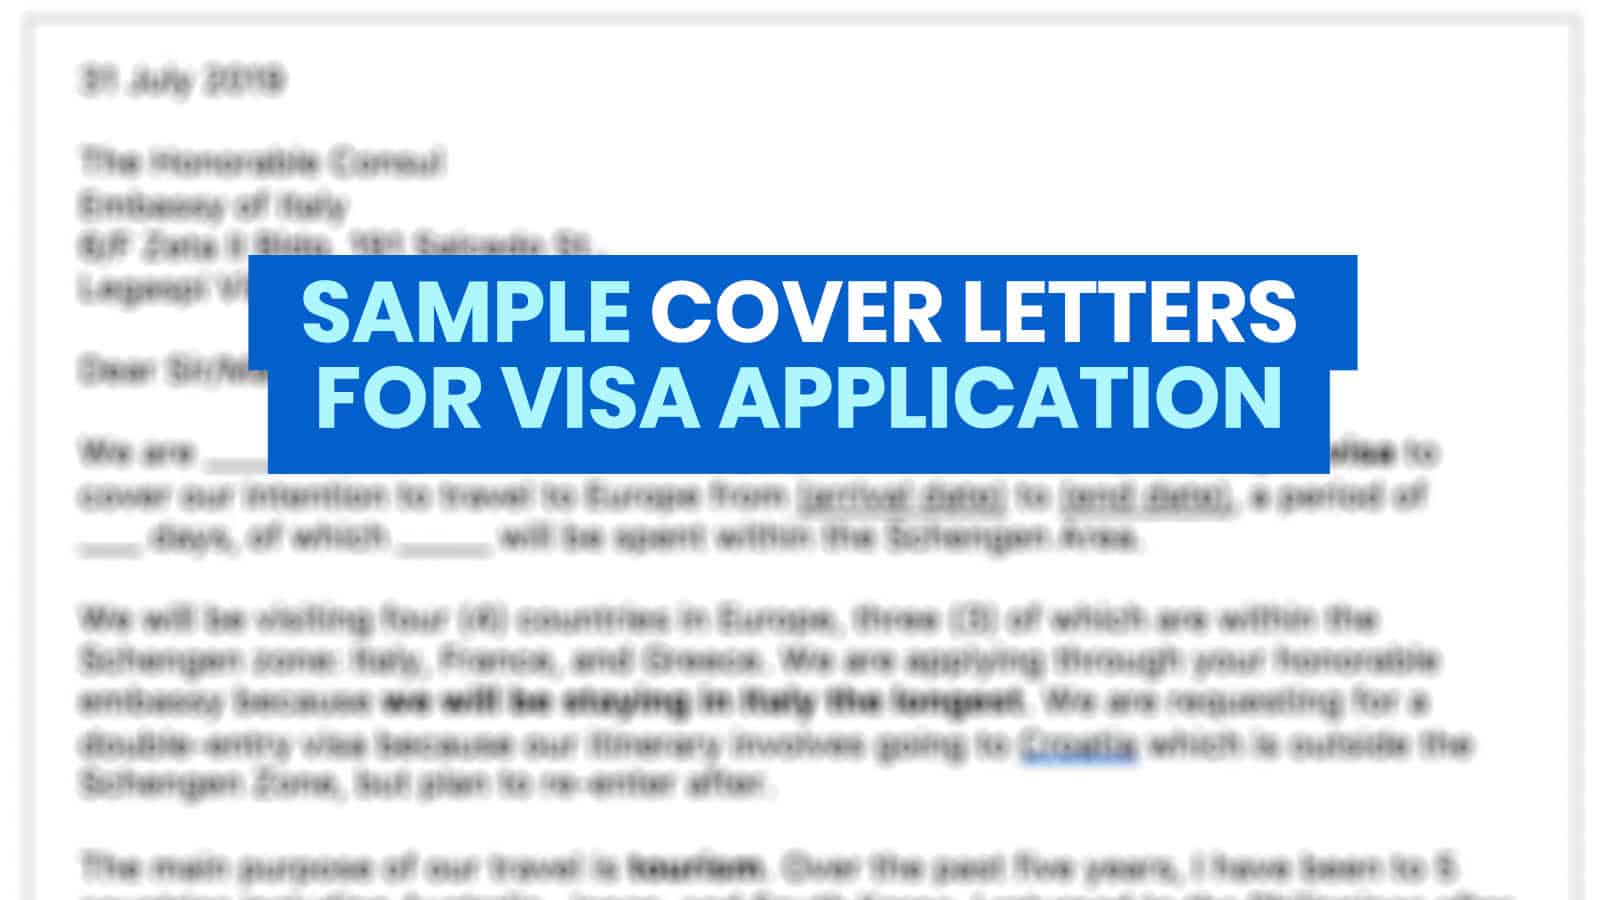 Sample Cover Letters For Visa Application Korea Schengen